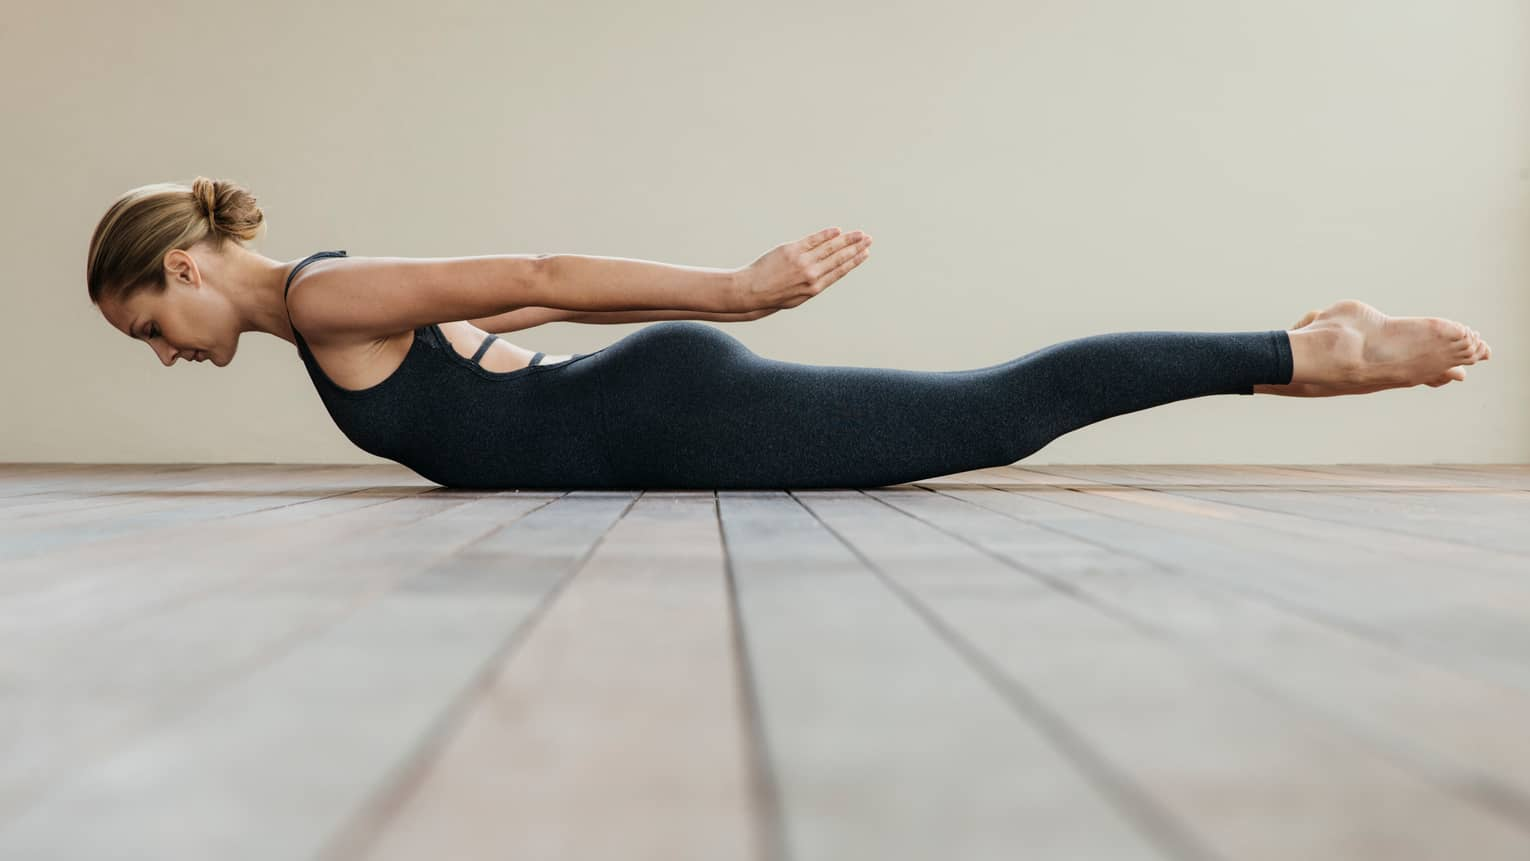 Woman wearing black spandex workout gear balances in plank position on floor